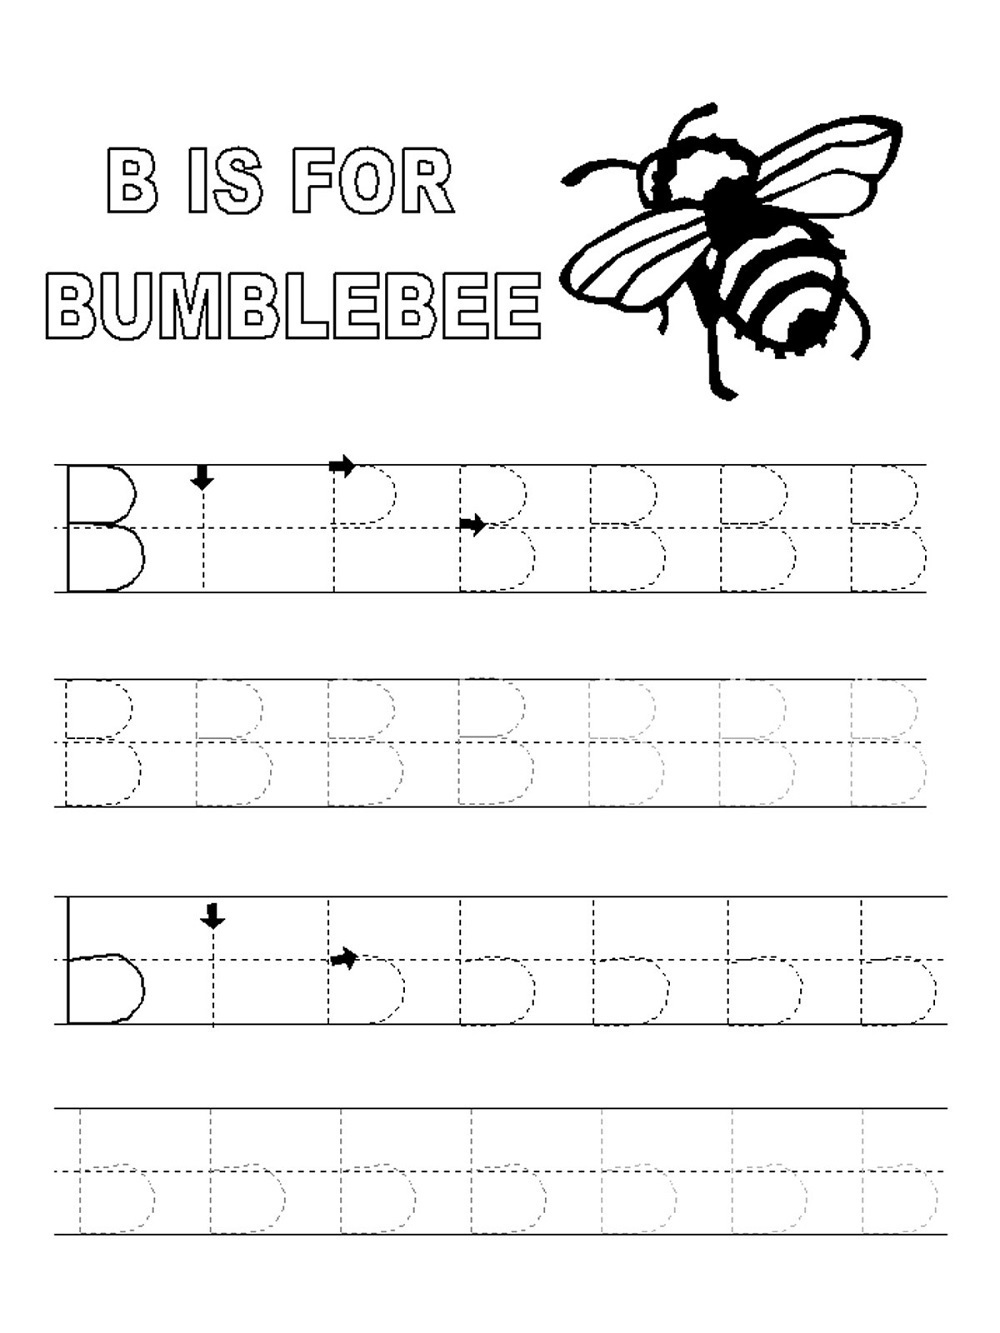 abc-trace-worksheet-activity Direction Worksheet For Kindergarten on missing vowel, winter math, printable vowel, my house, sight word now, spring addition, fun phonics, printable reading, long vowel, free adjective,